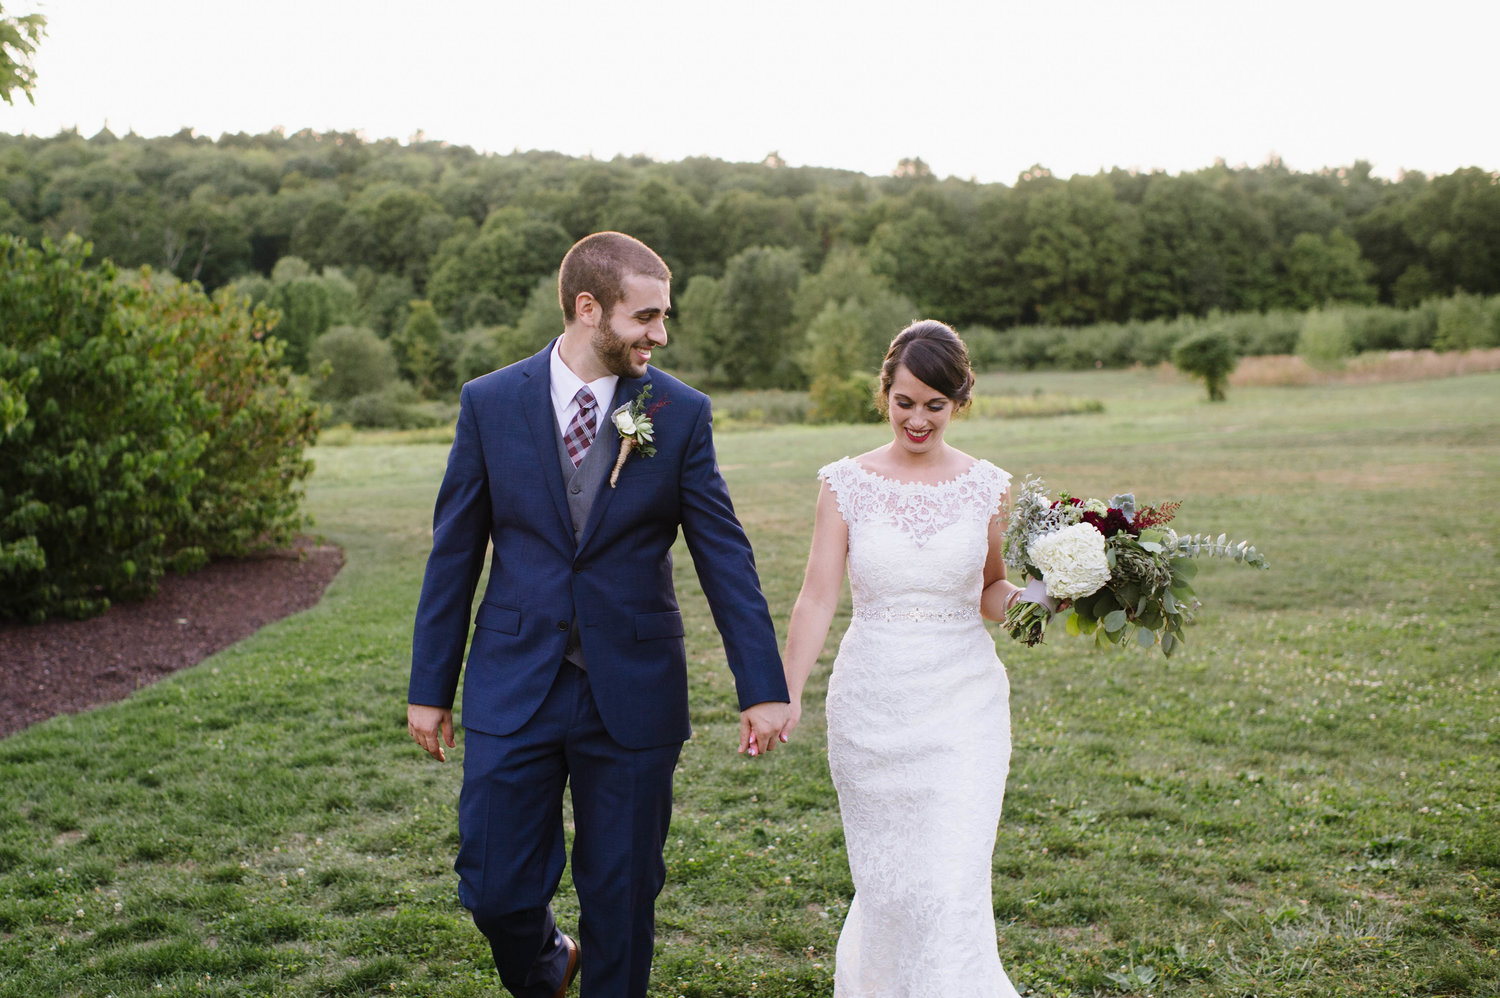 LAURA + ZACH'S WEDDING DAY AT THE  QUONQUONT FARM , WHATELY, MA